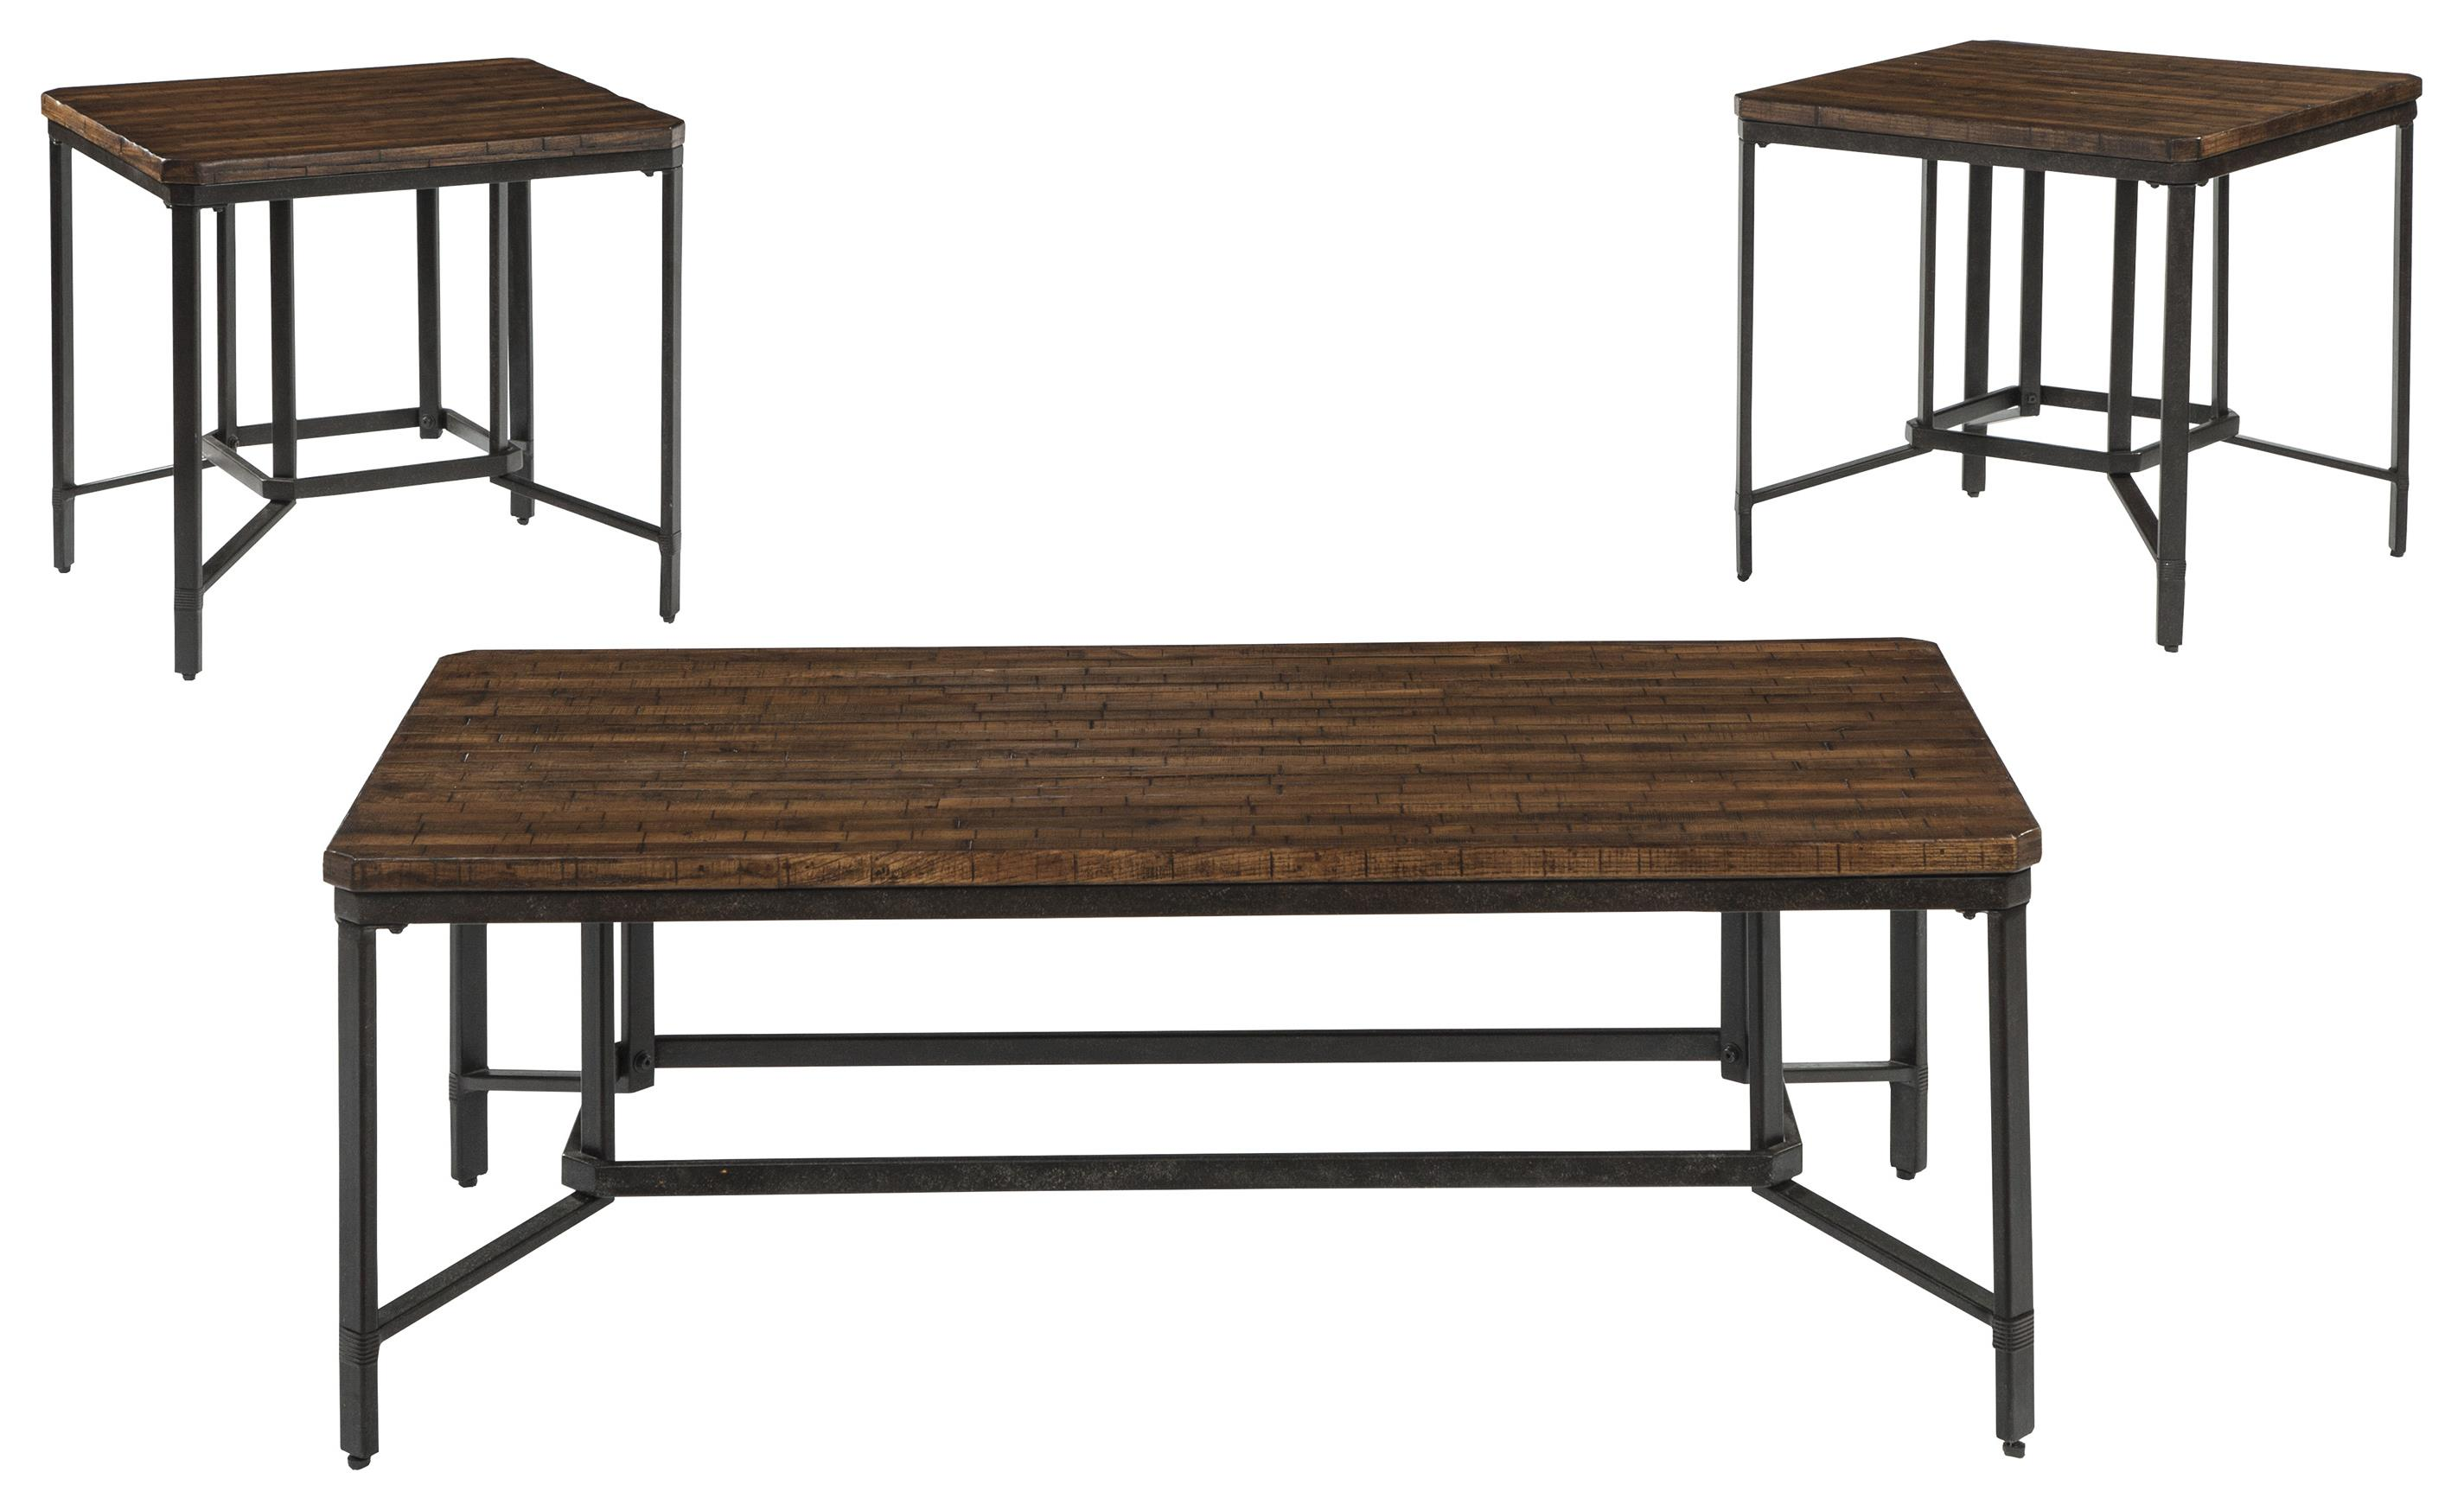 Signature Design by Ashley Newelk Occasional Table Set - Item Number: T442-13